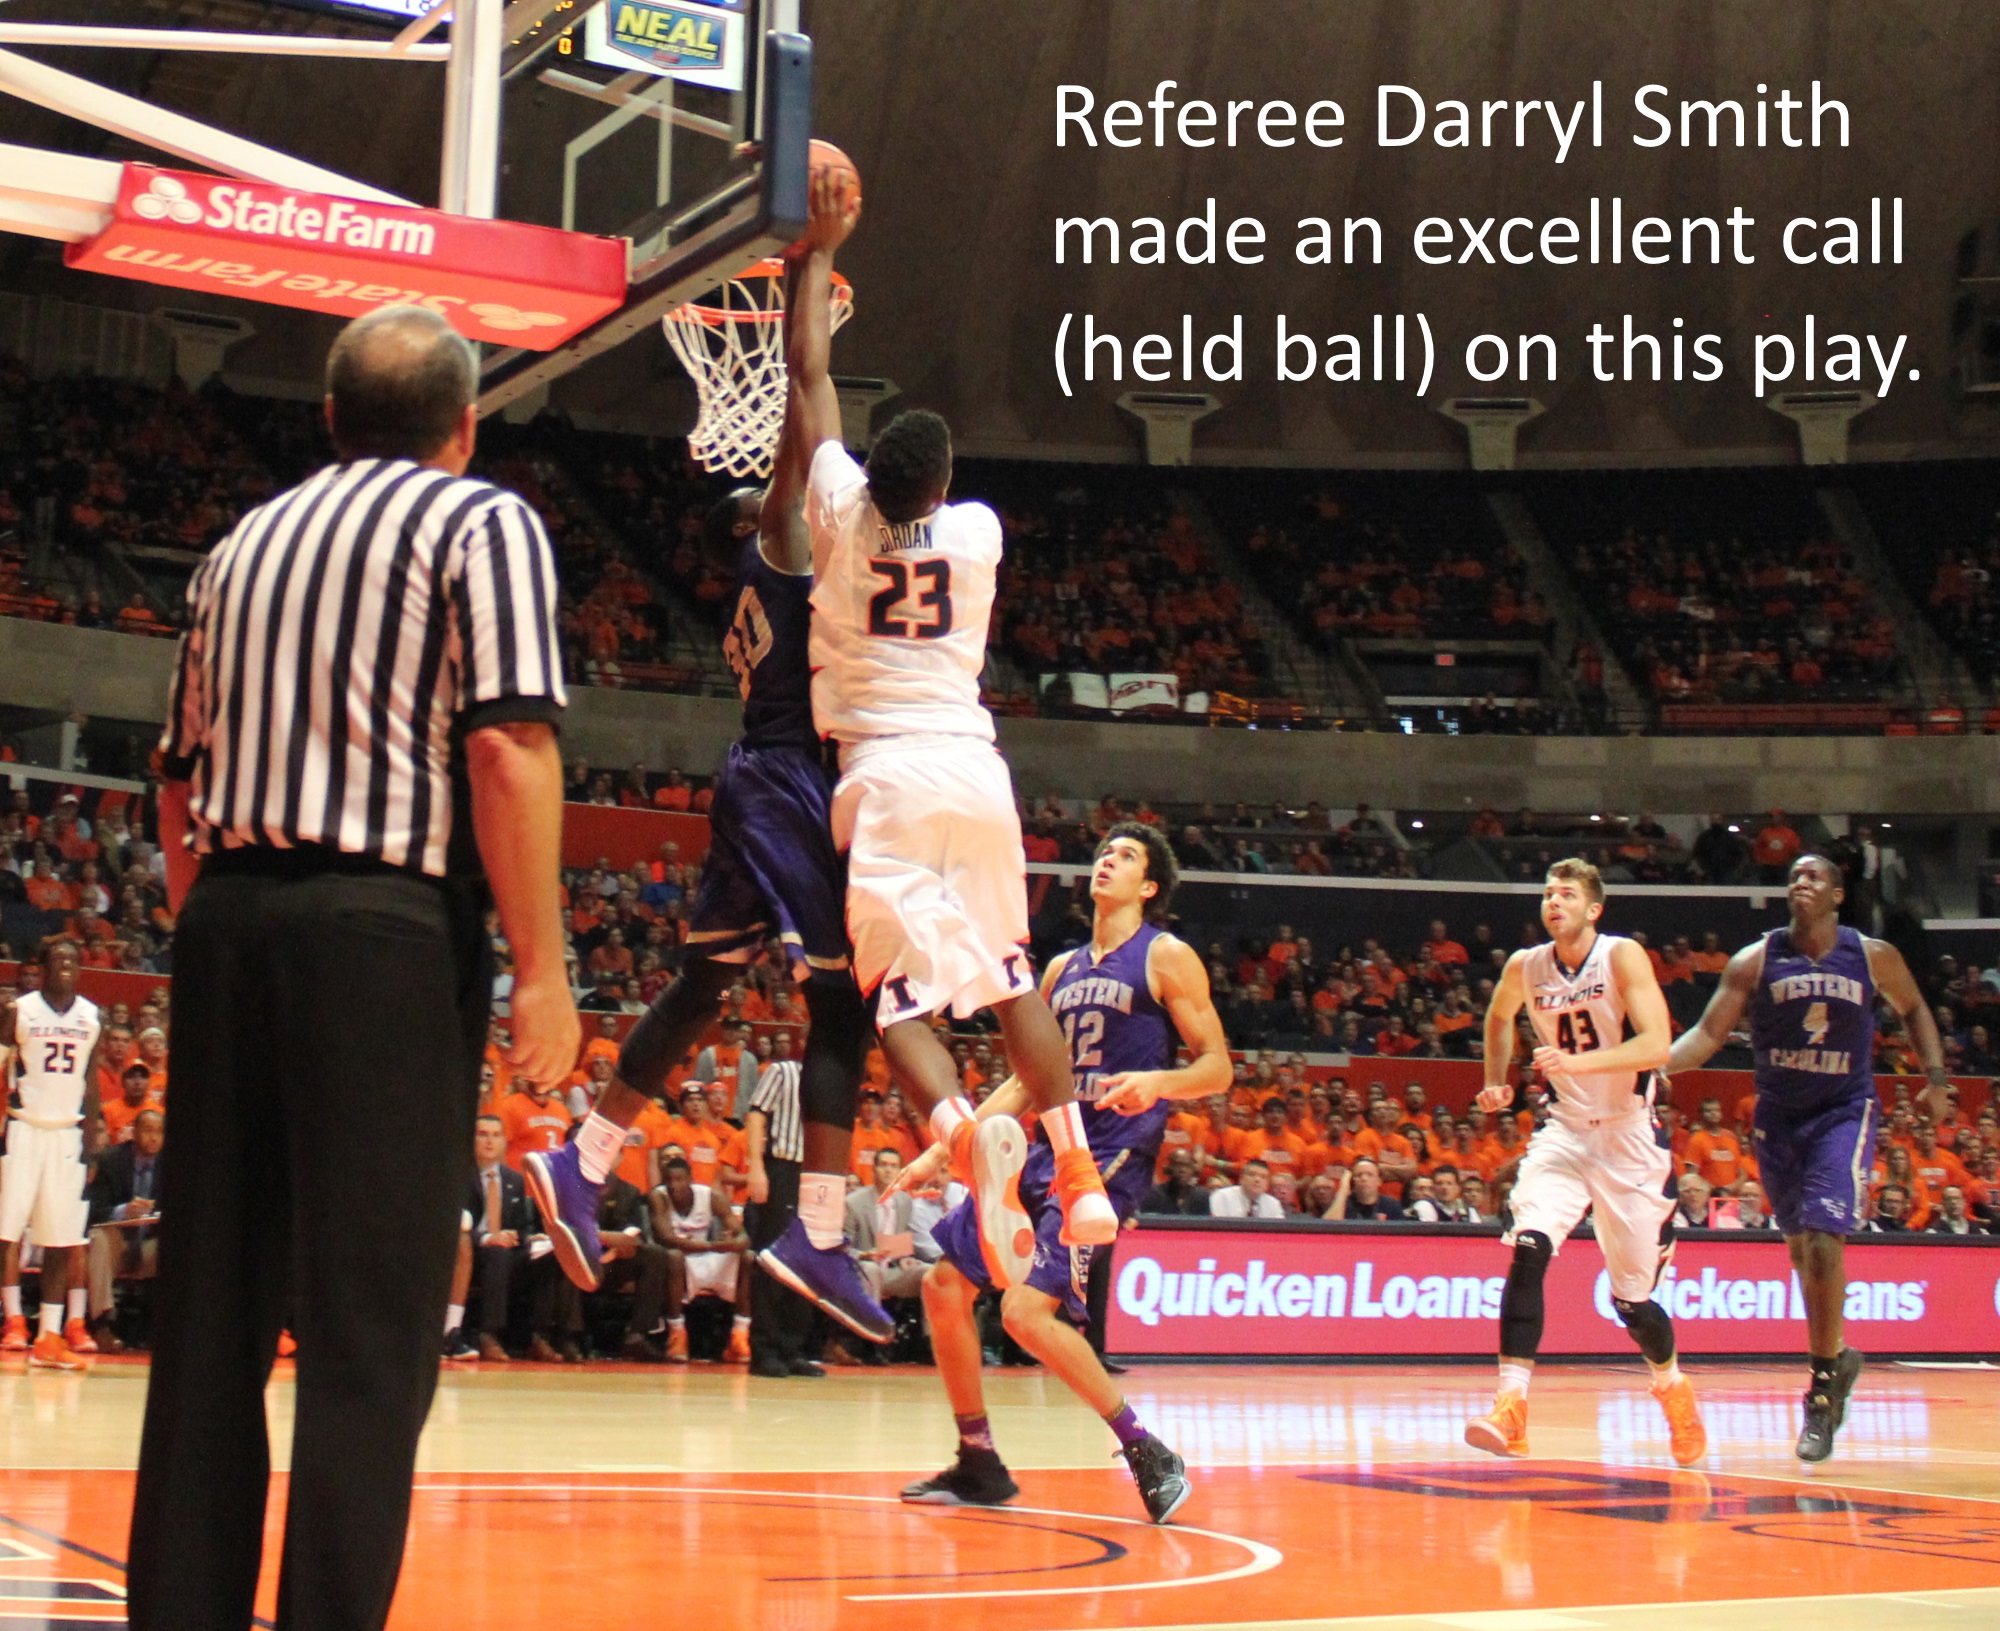 Darryl Smith excellent call